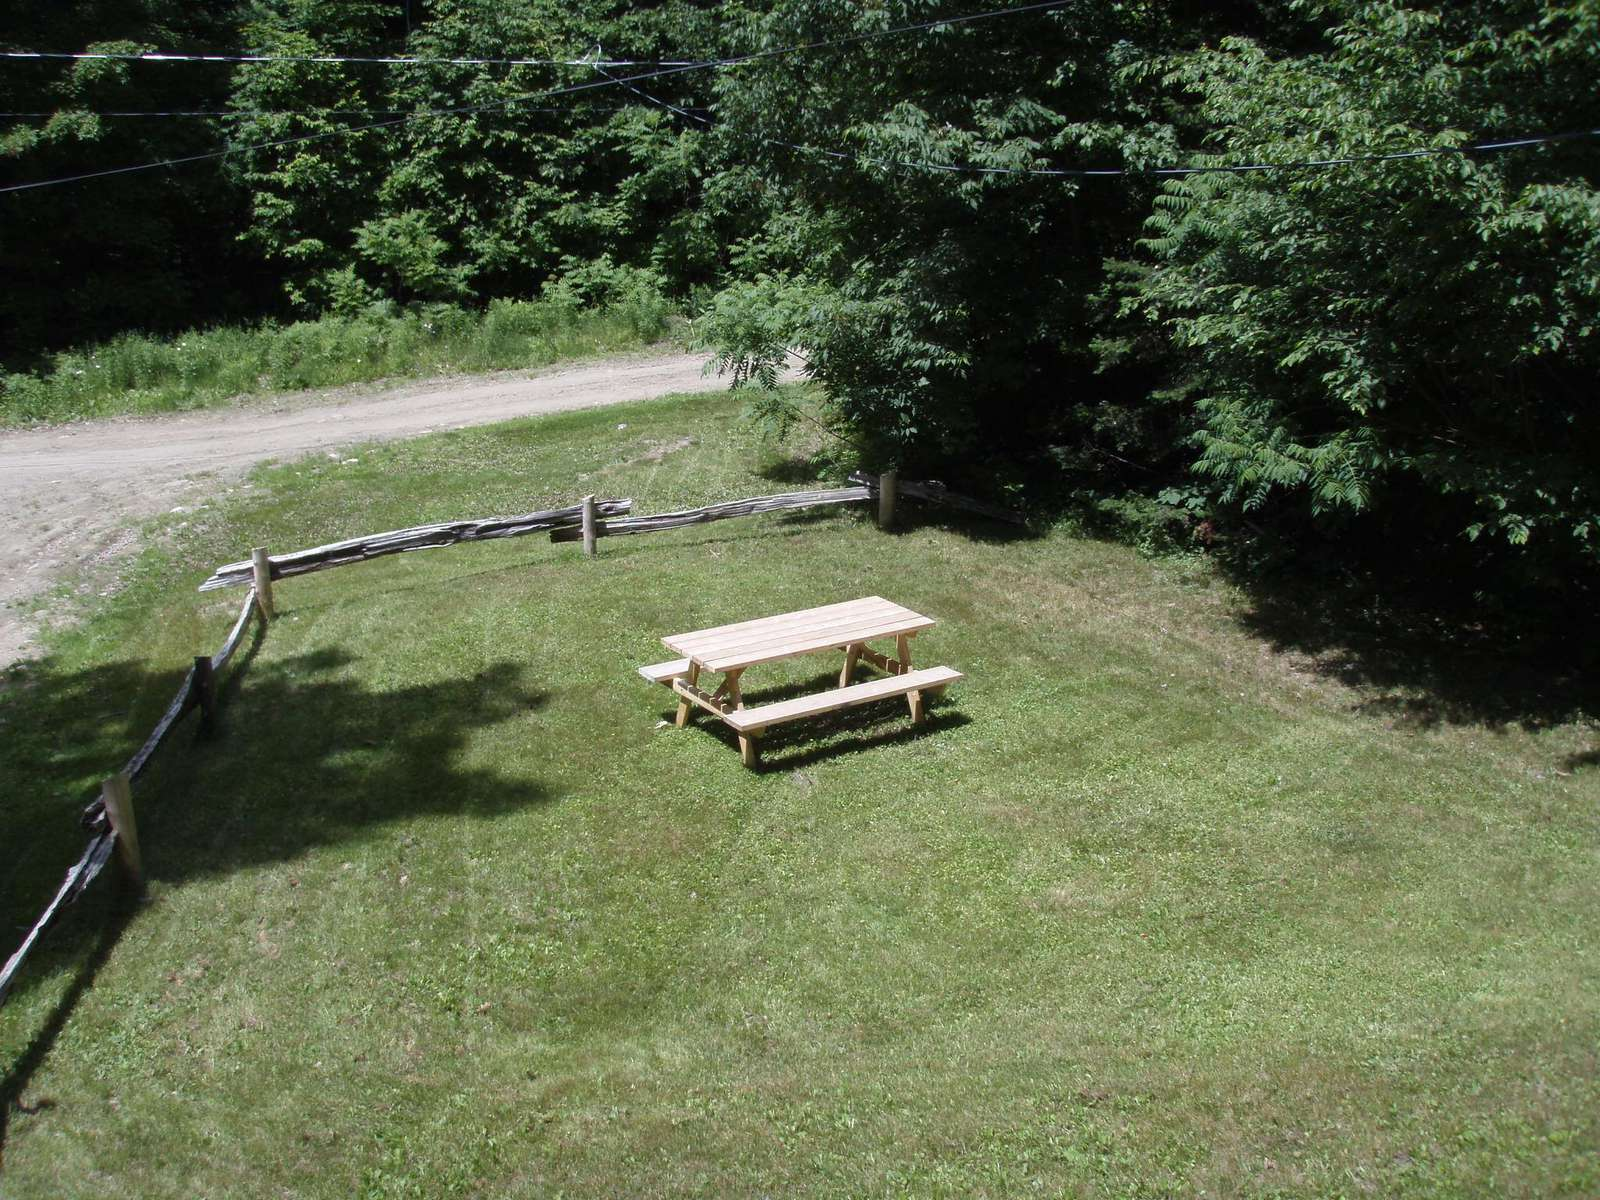 Picnic and play area. also, extra parking spaces on lower level of the grass (outside the fence)